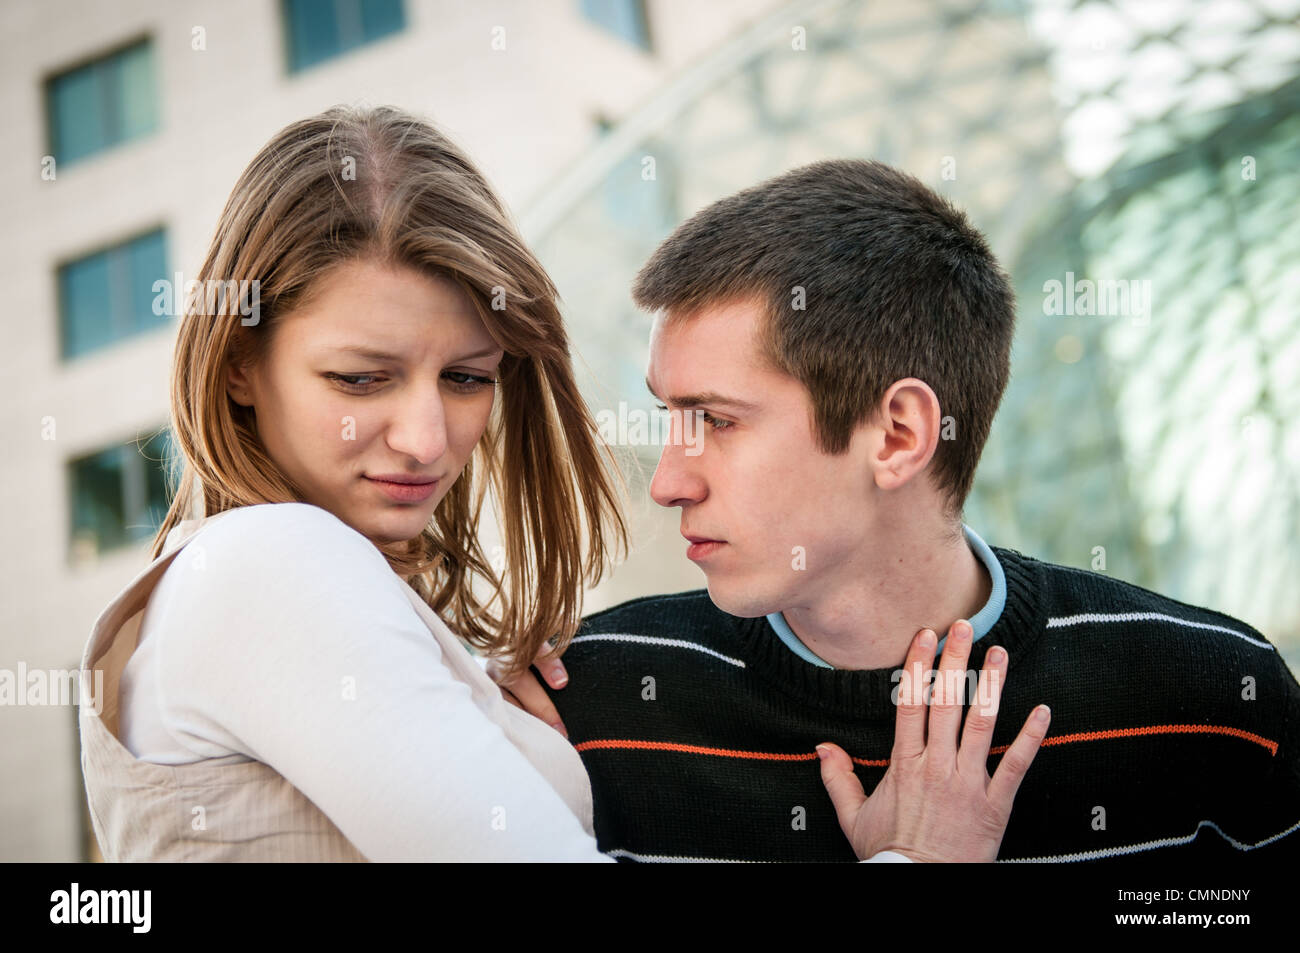 Lifestyle image of young woman refusing man outside on street having relationship problems - Stock Image